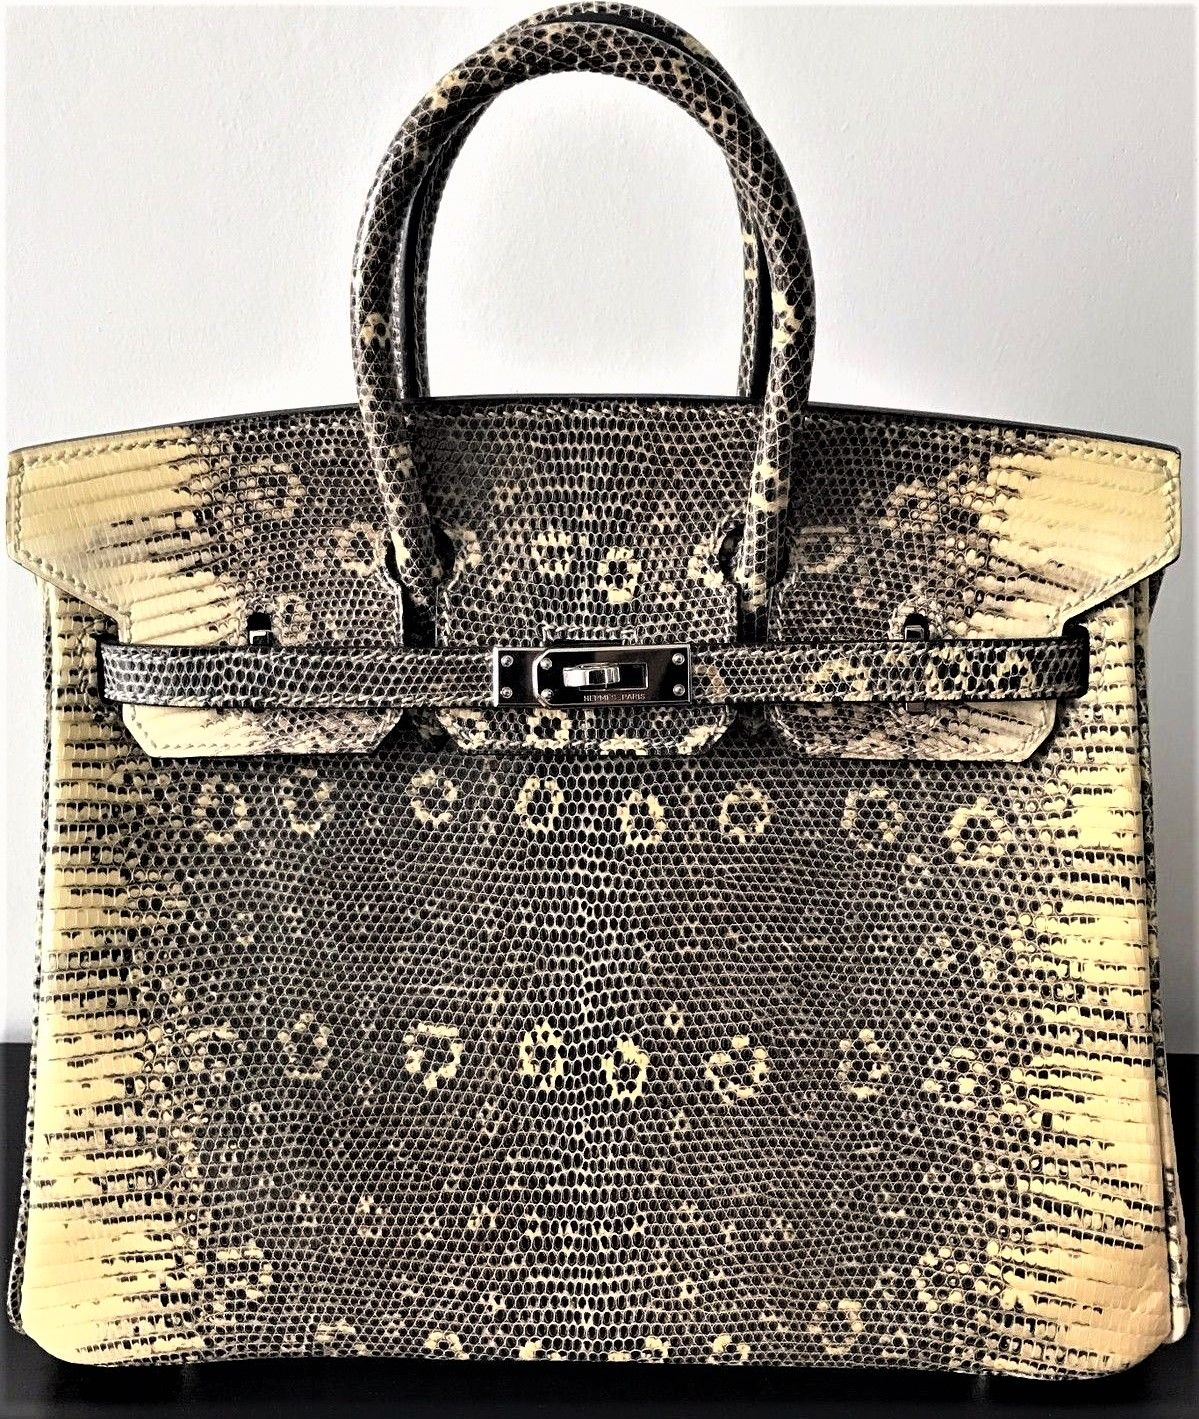 243ac40c30 Extremely rare 30cm Ombre Salvator Lizard Hermes Birkin from 2015. Sensibly  priced at 30